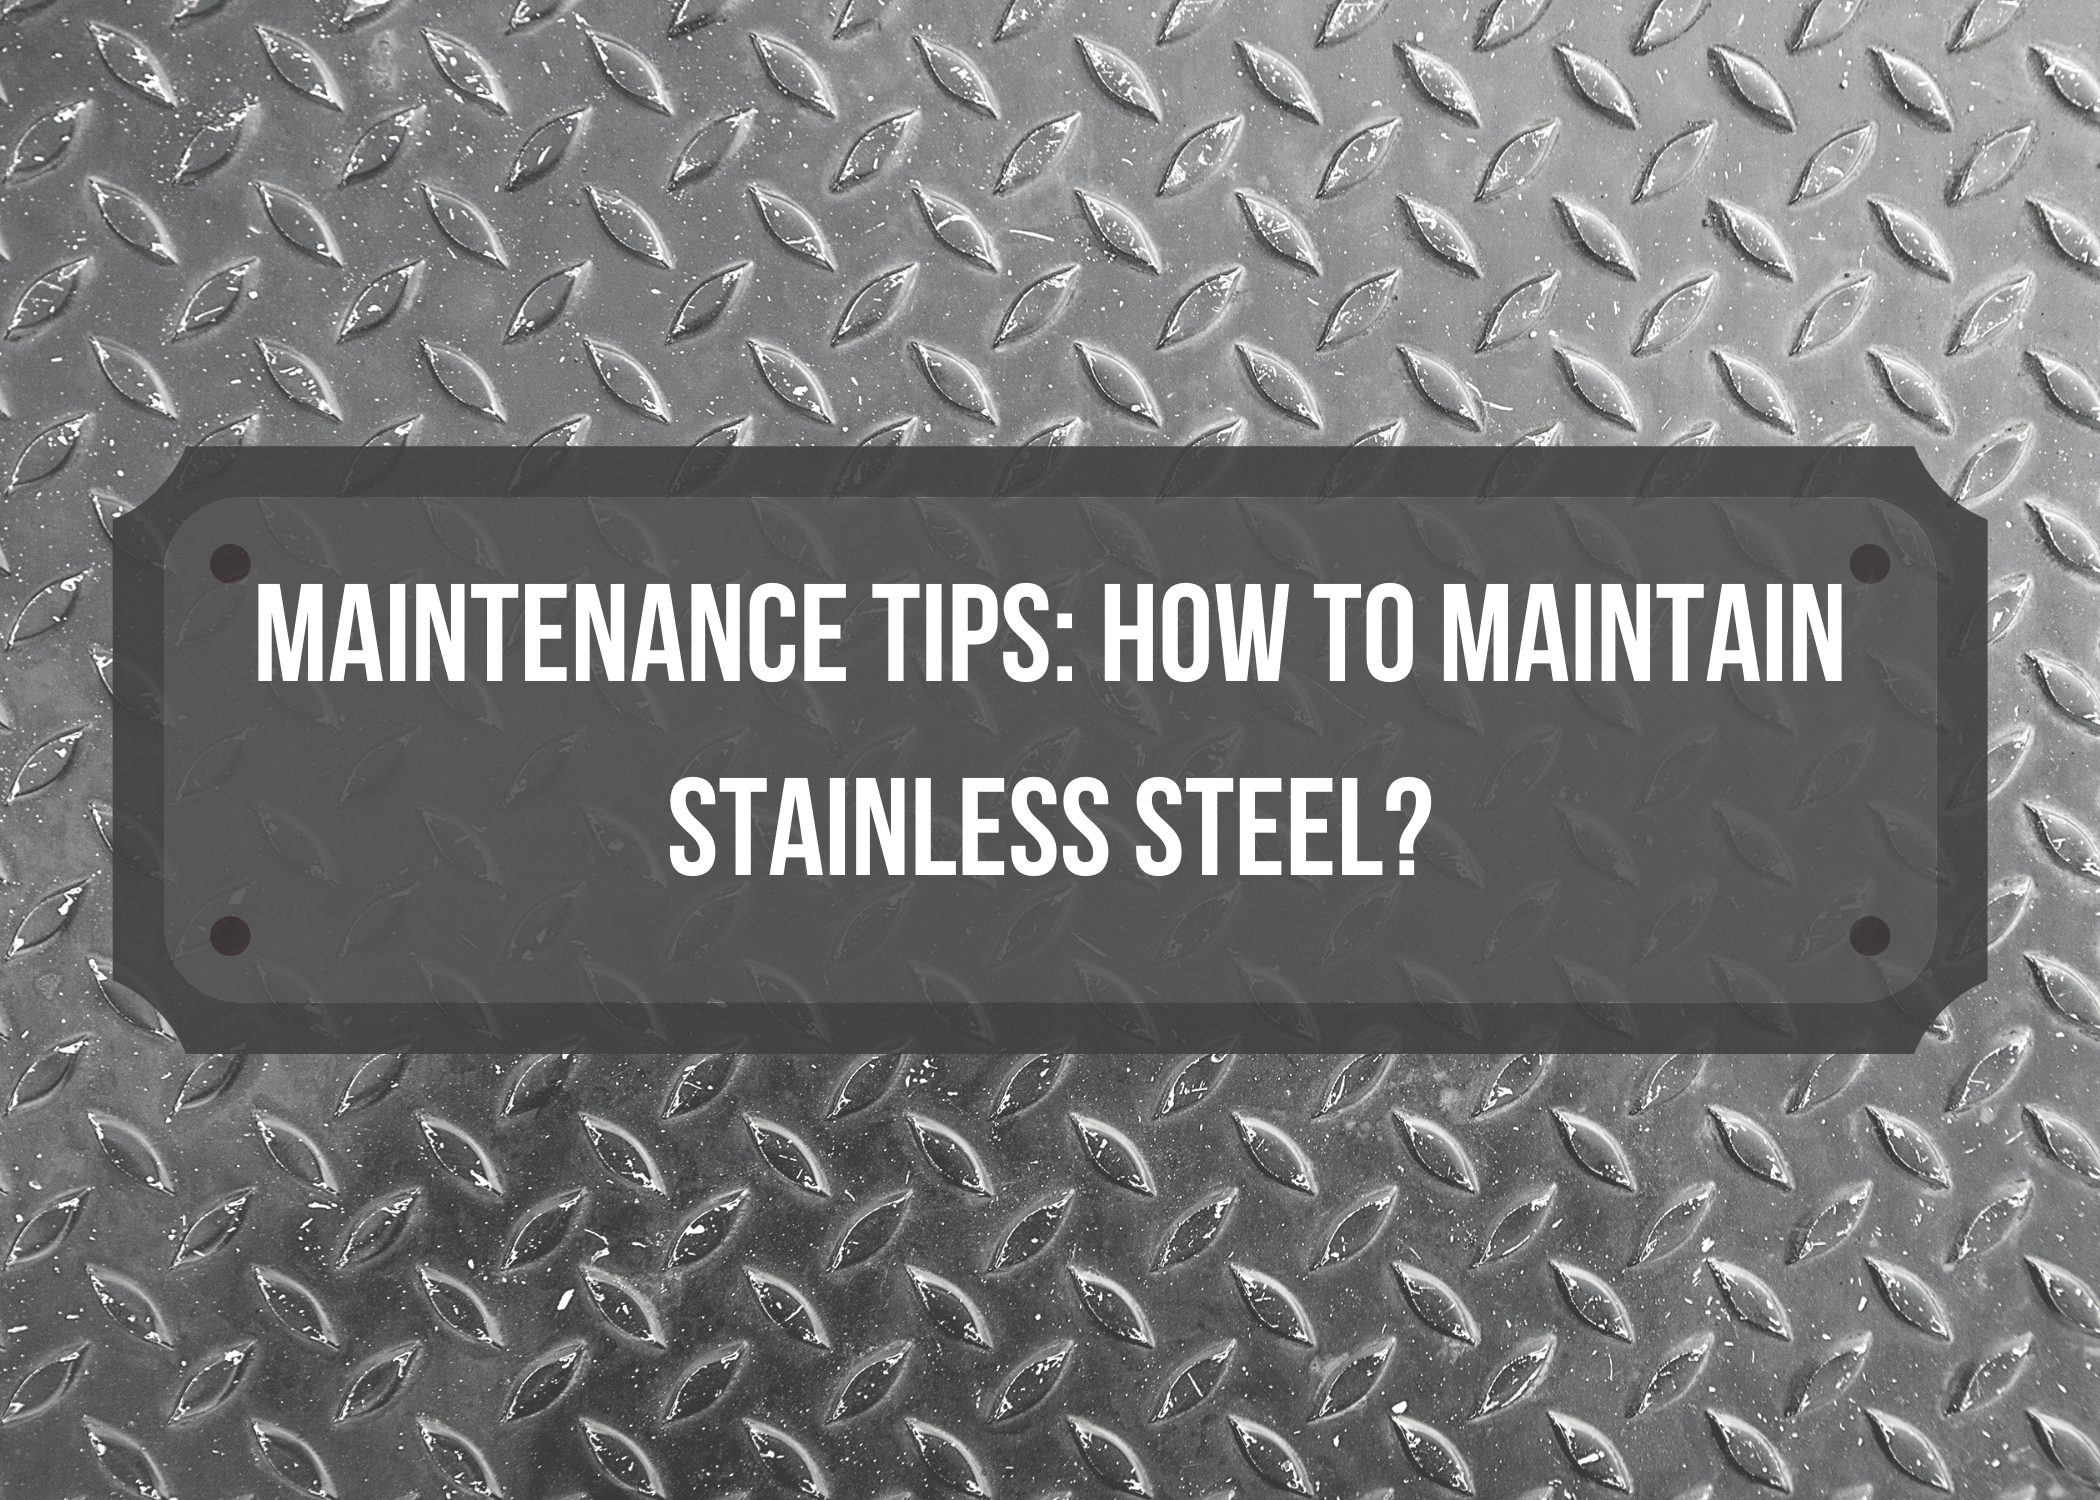 Maintenance Tips: How to Maintain Stainless Steel?